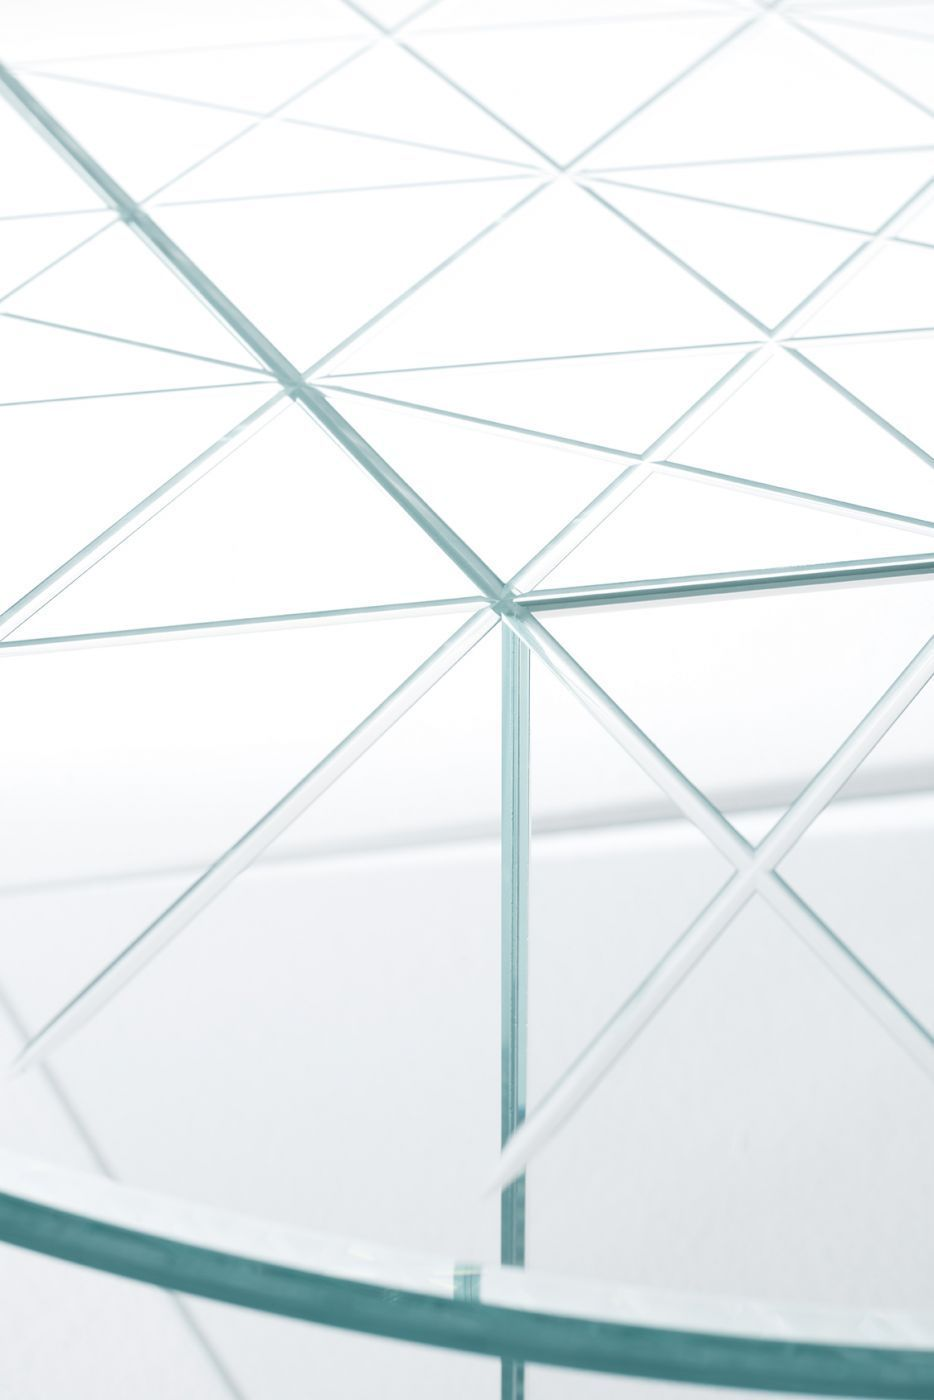 Twinkle Table by Chiara Andreatti for Glas Italia